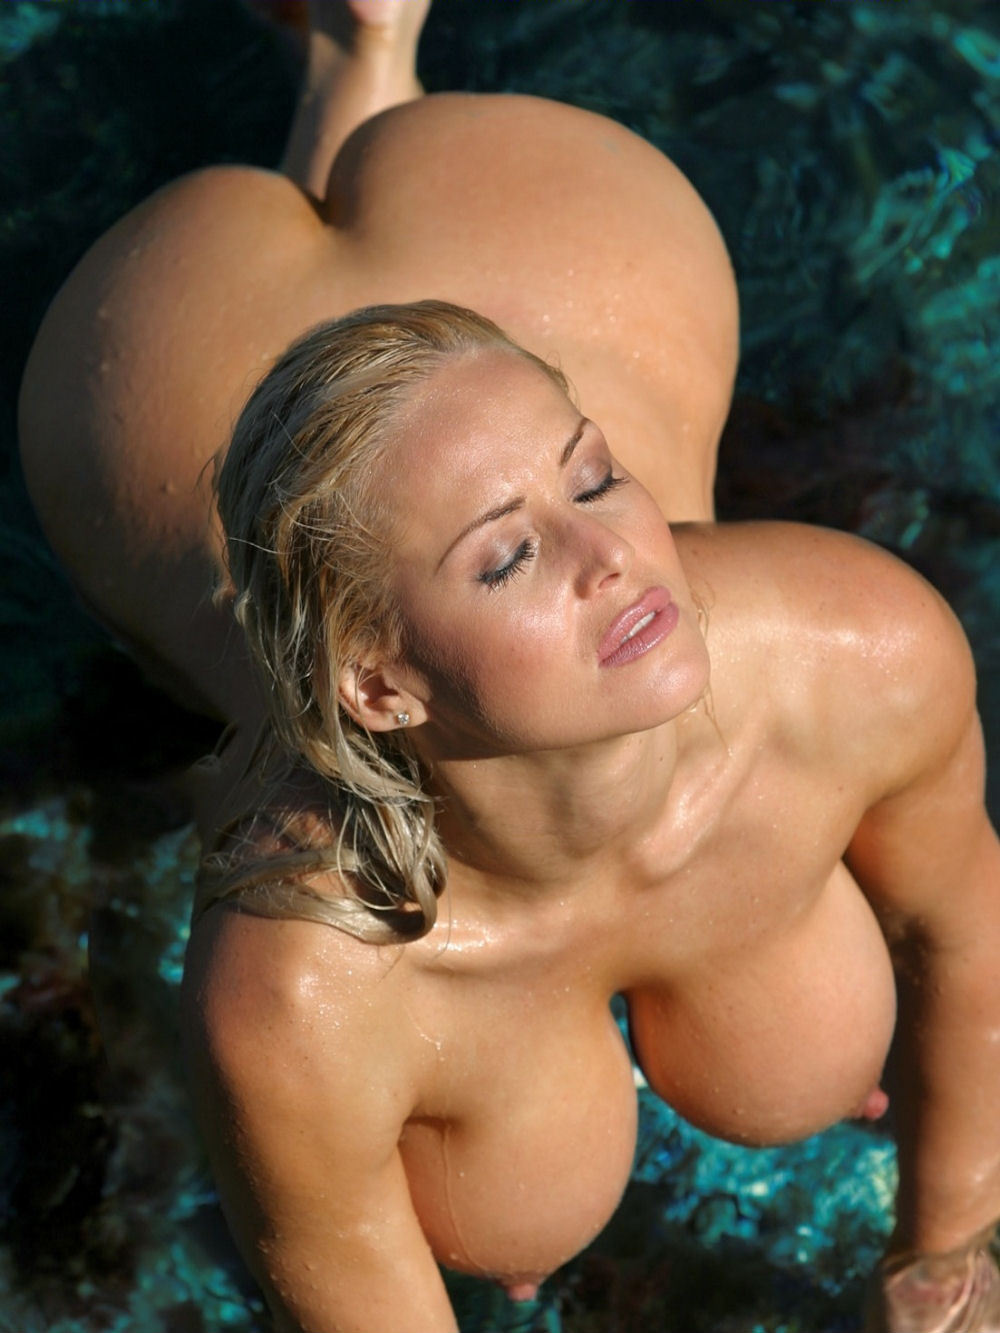 lena paul gets a penis inside her pussie